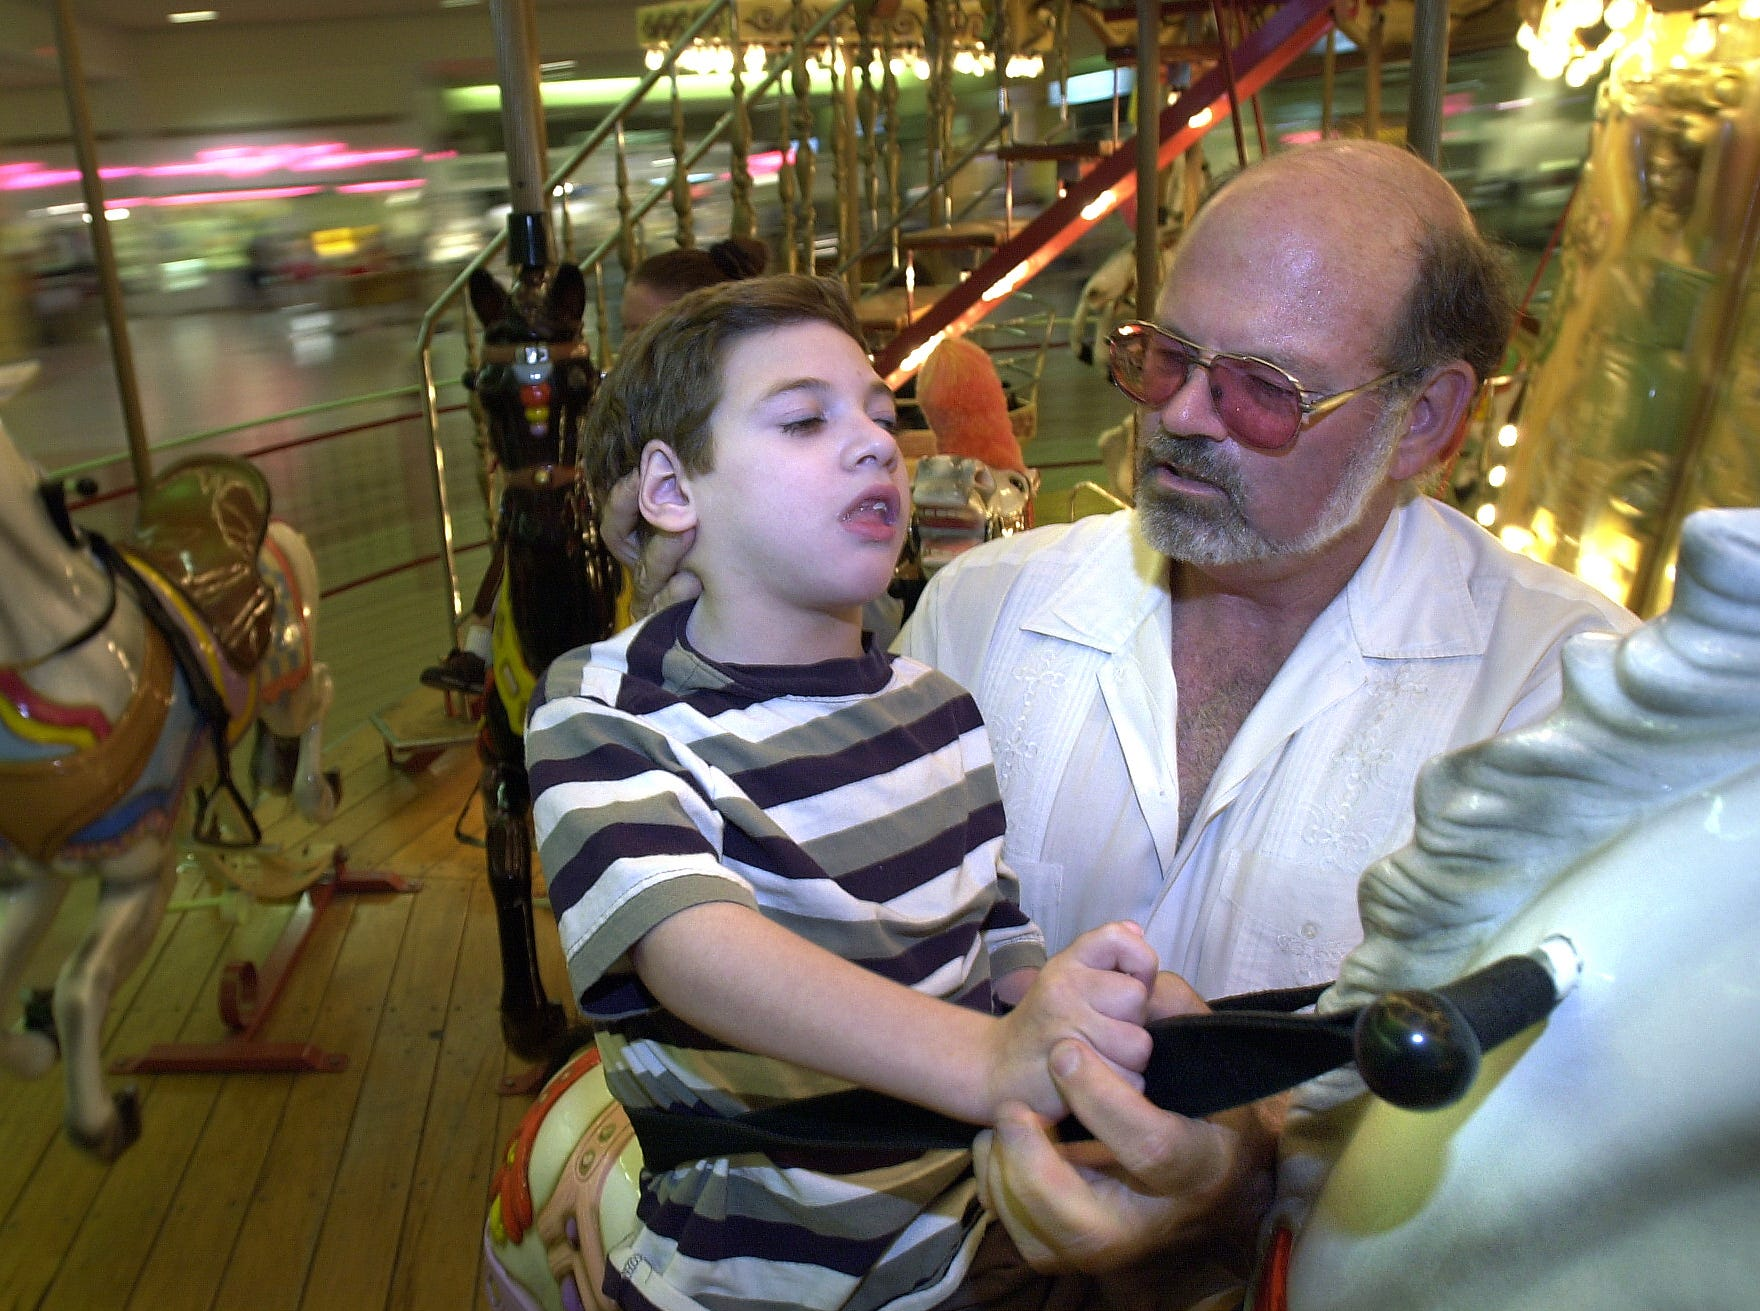 John Madden helps his son John Terry ride the carousel at the Padre Staples Mall in June 2000. Although John Terry has many disabilities, Madden wants him to experience as much as he can.